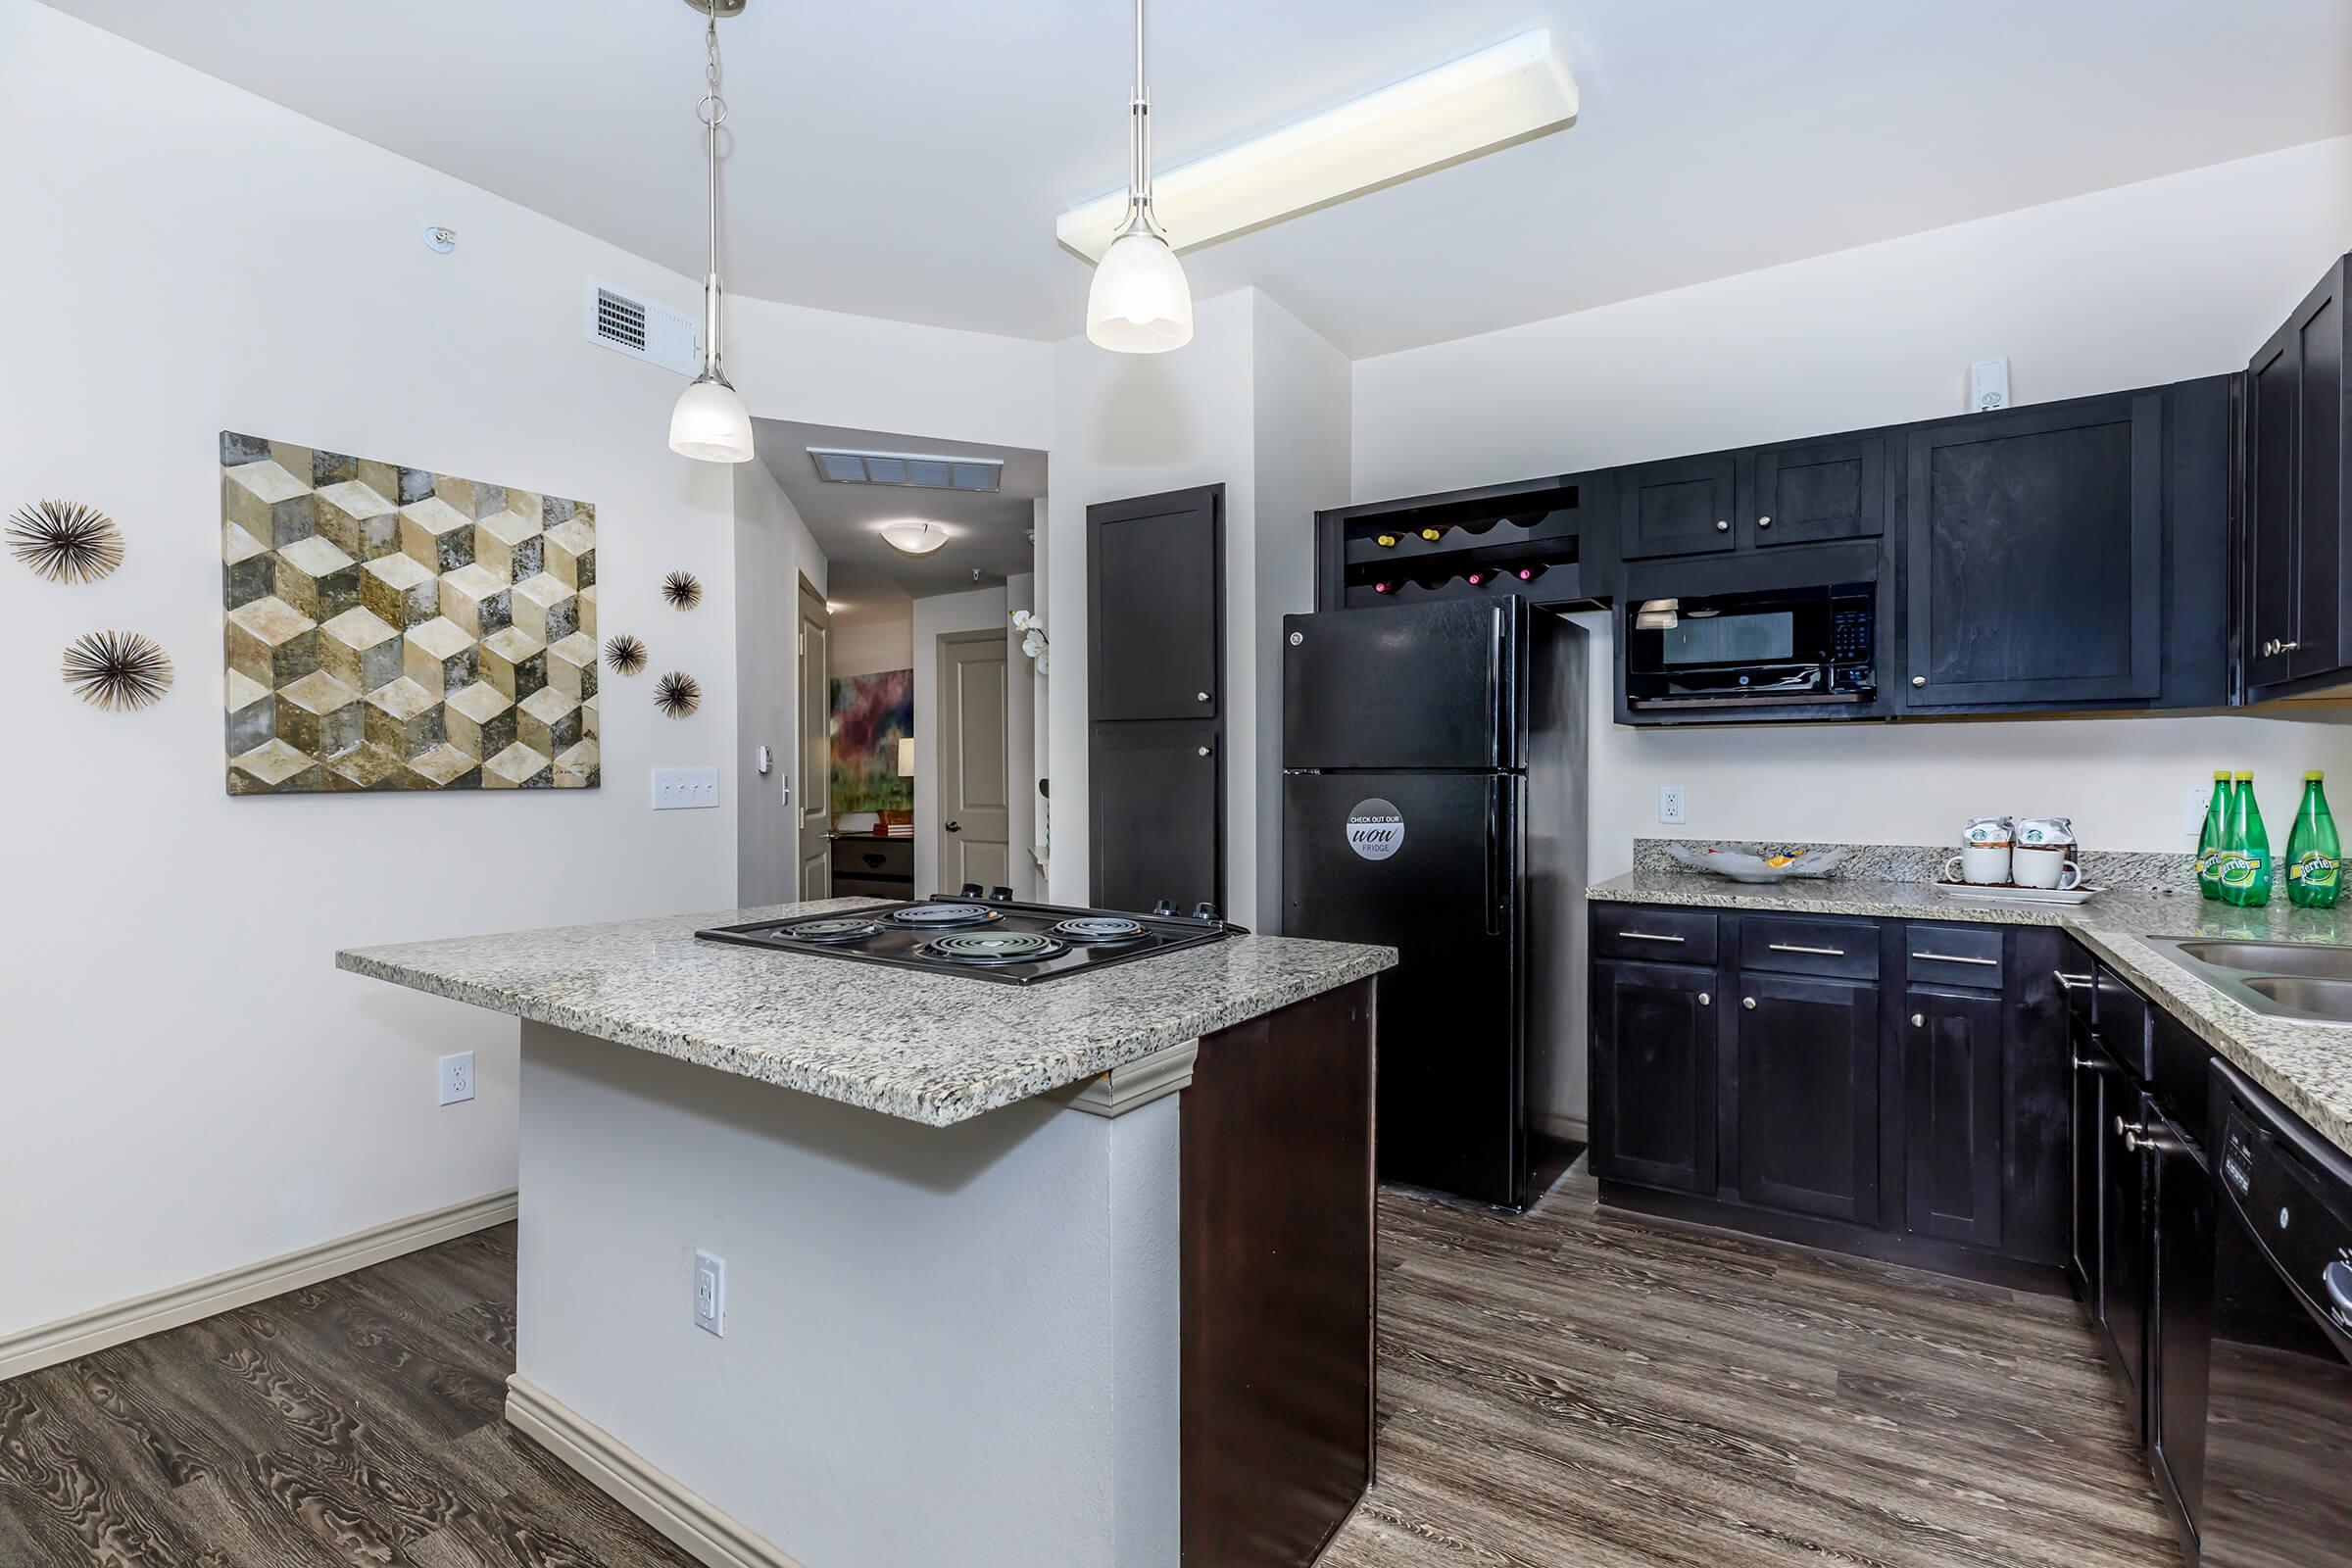 a kitchen with lots of counter space